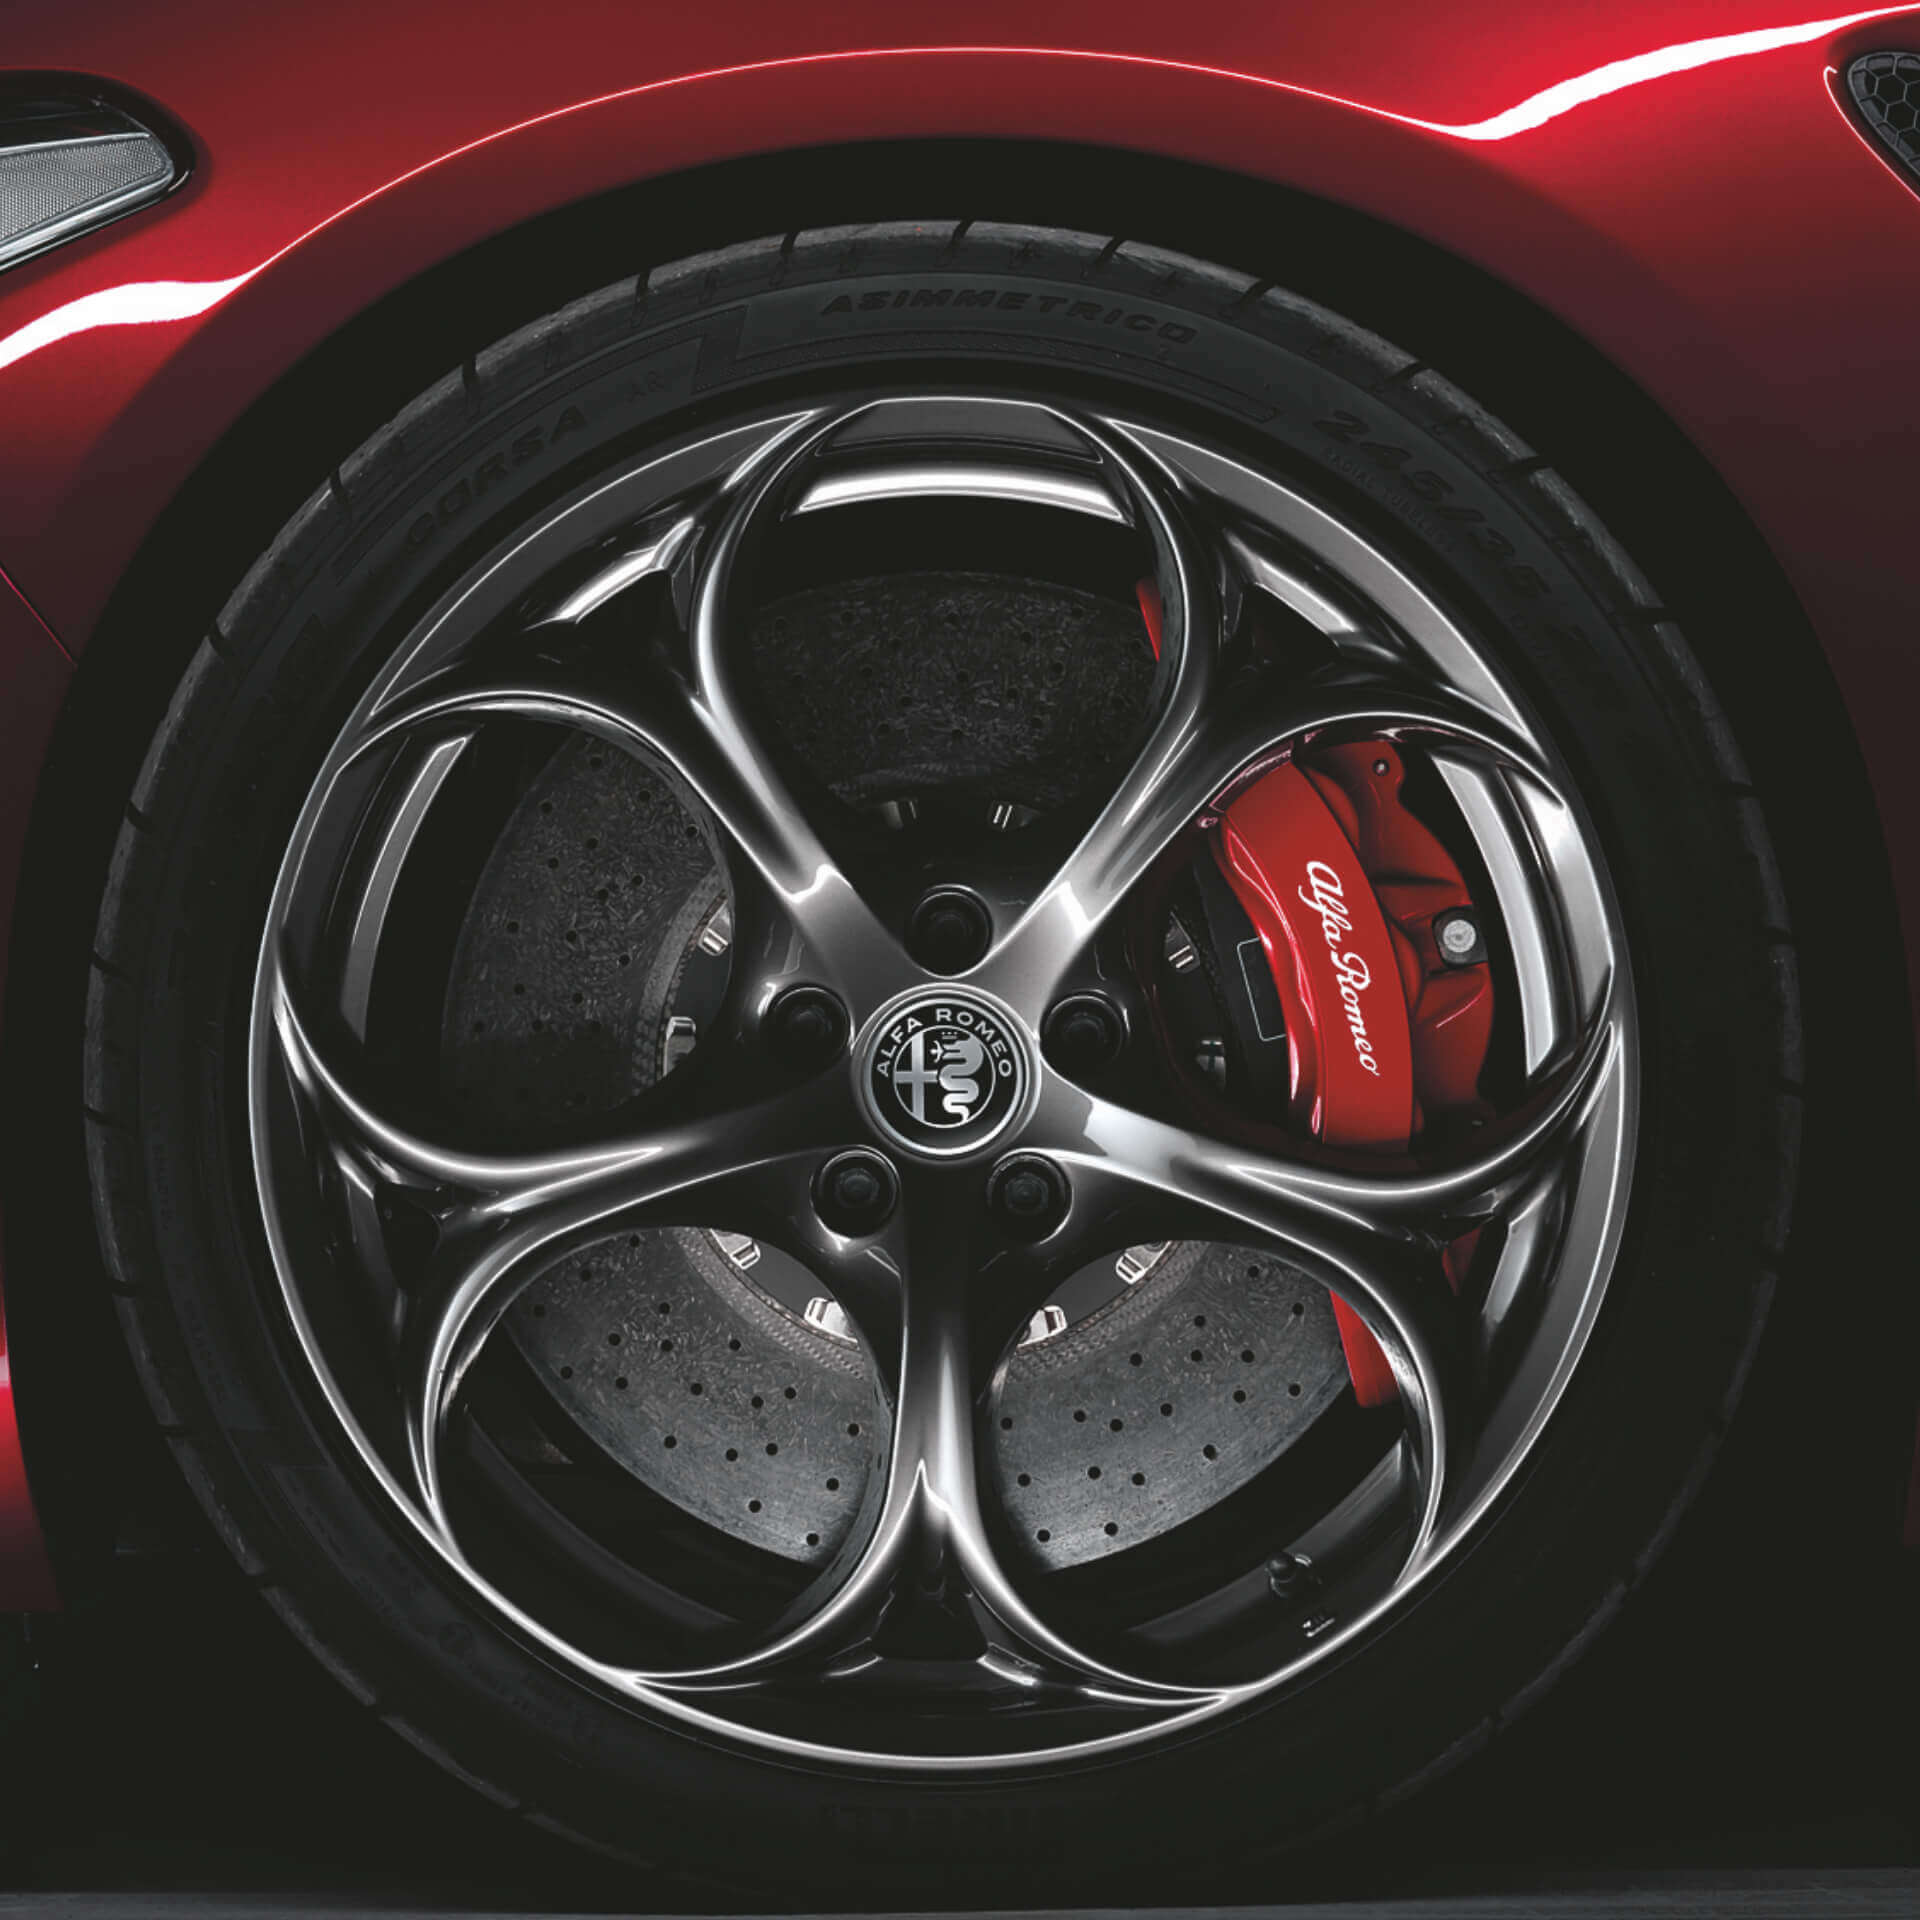 Close-up of Alfa Romeo wheel